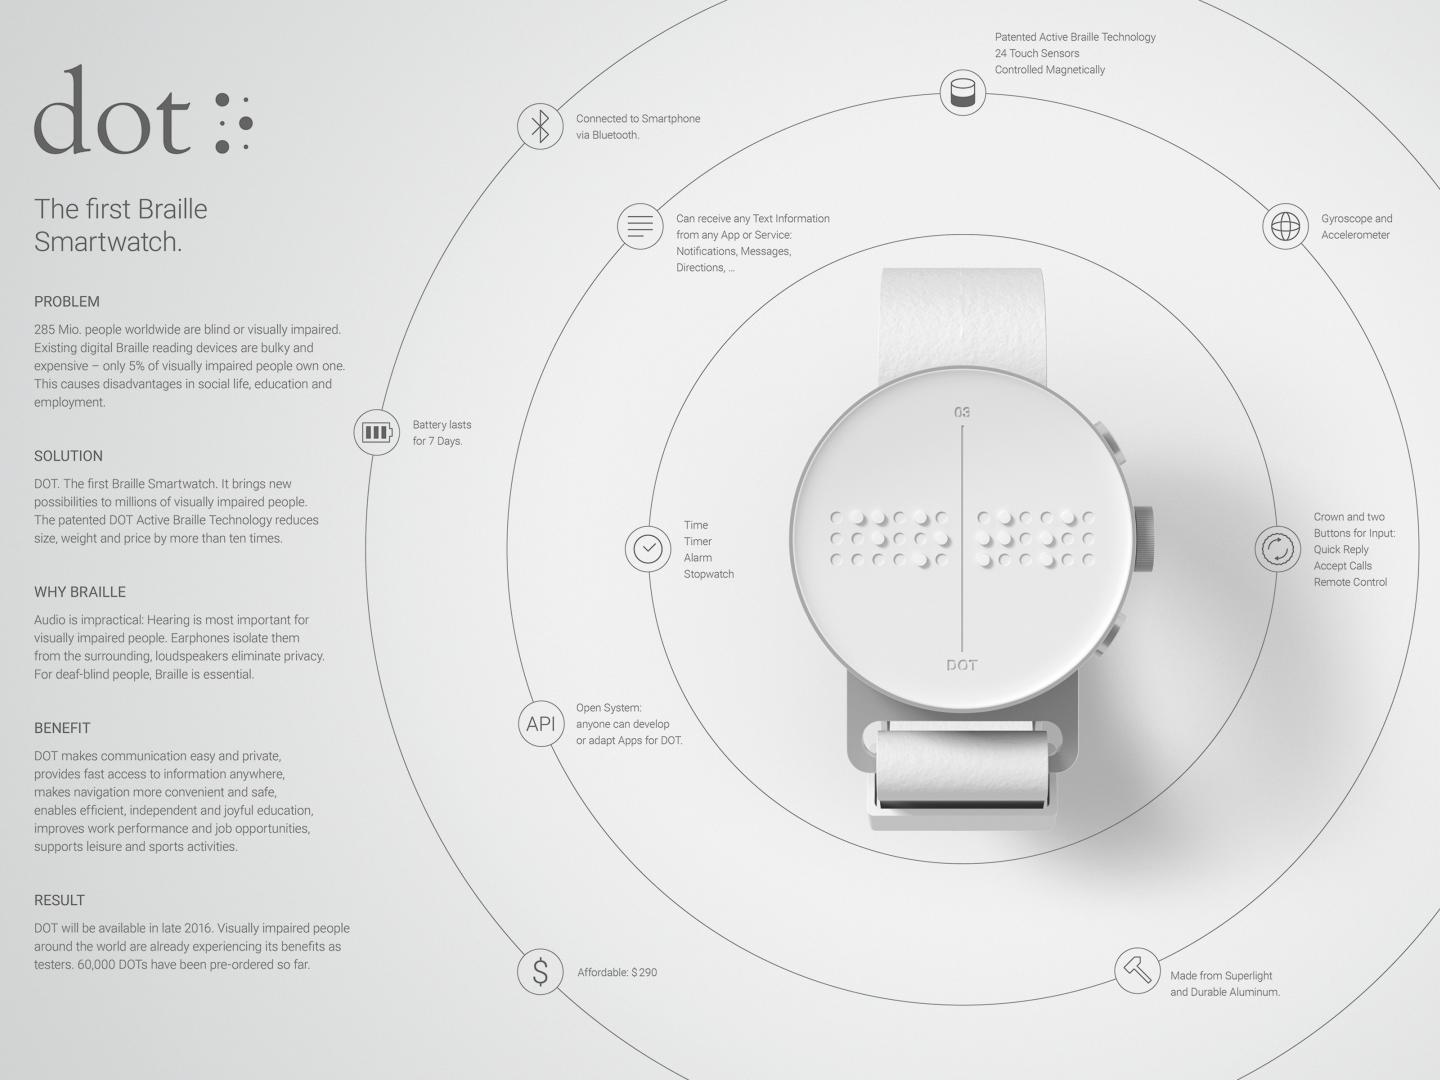 DOT. The first Braille Smartwatch. Thumbnail